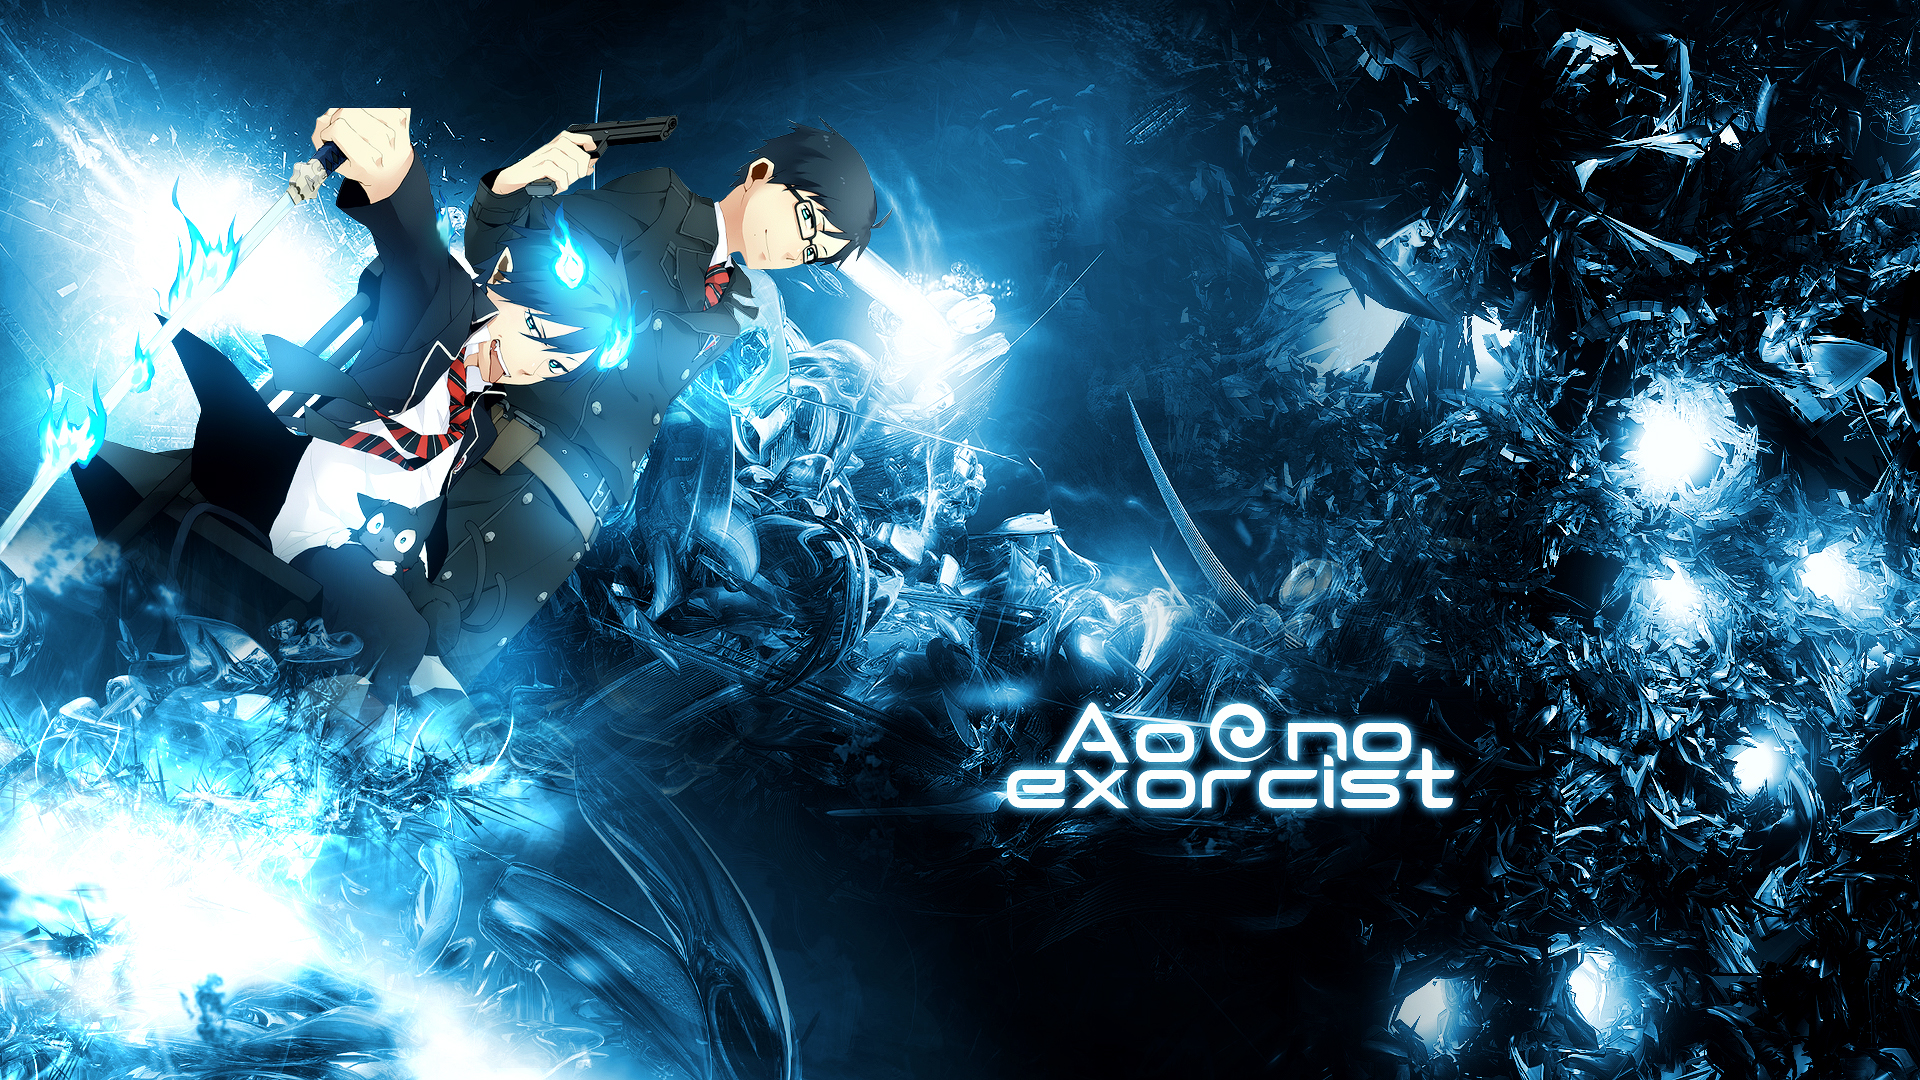 Ao no exorcist blue exorcist hd wallpaper background - Blue exorcist wallpaper ...